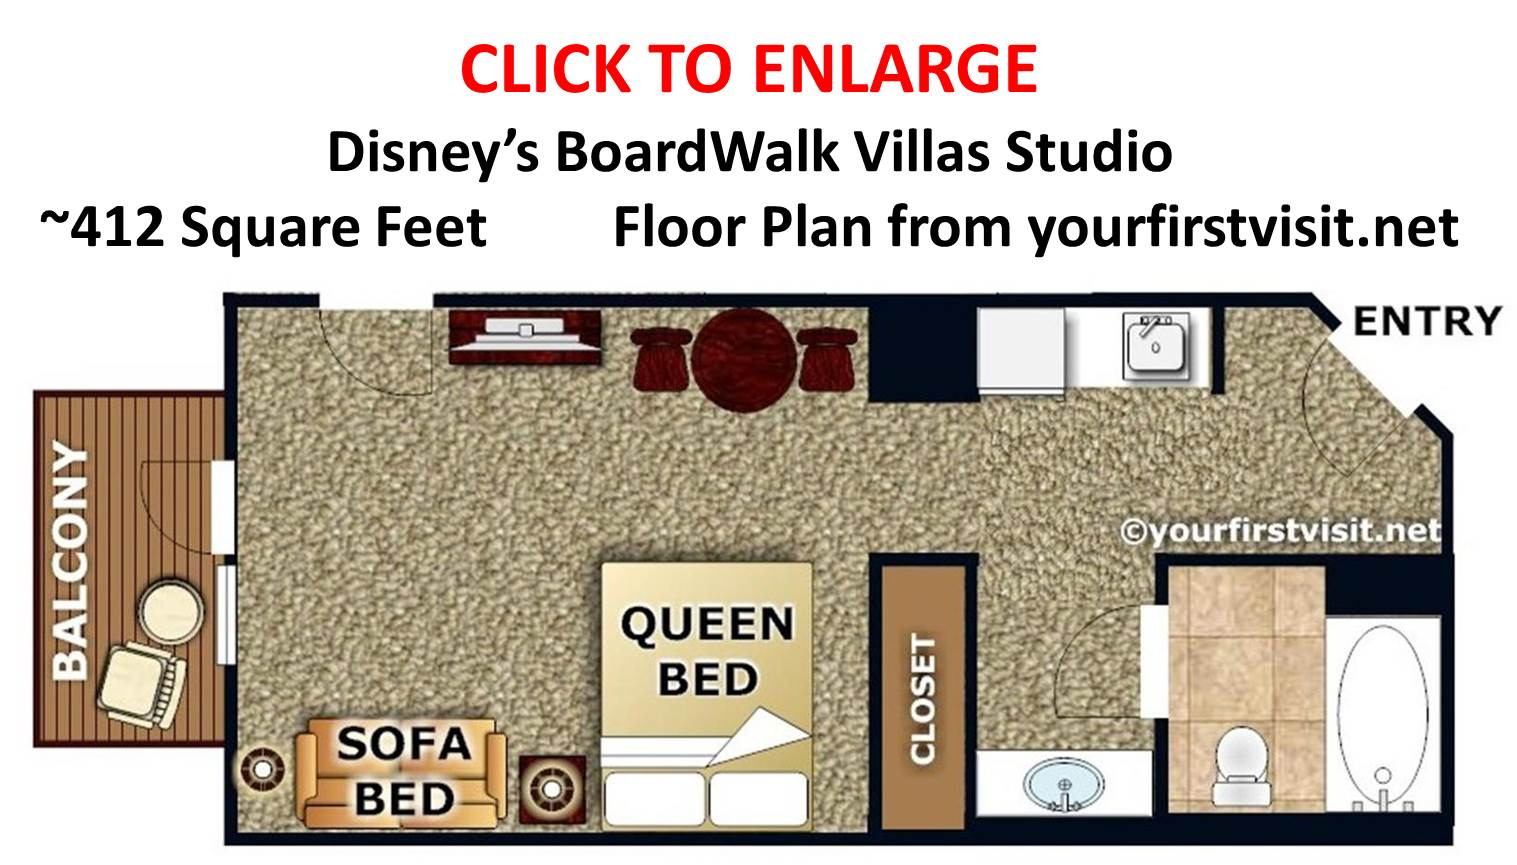 Sleeping Space Options And Bed Types At Walt Disney World Resort Hotels on disney old key west room layout